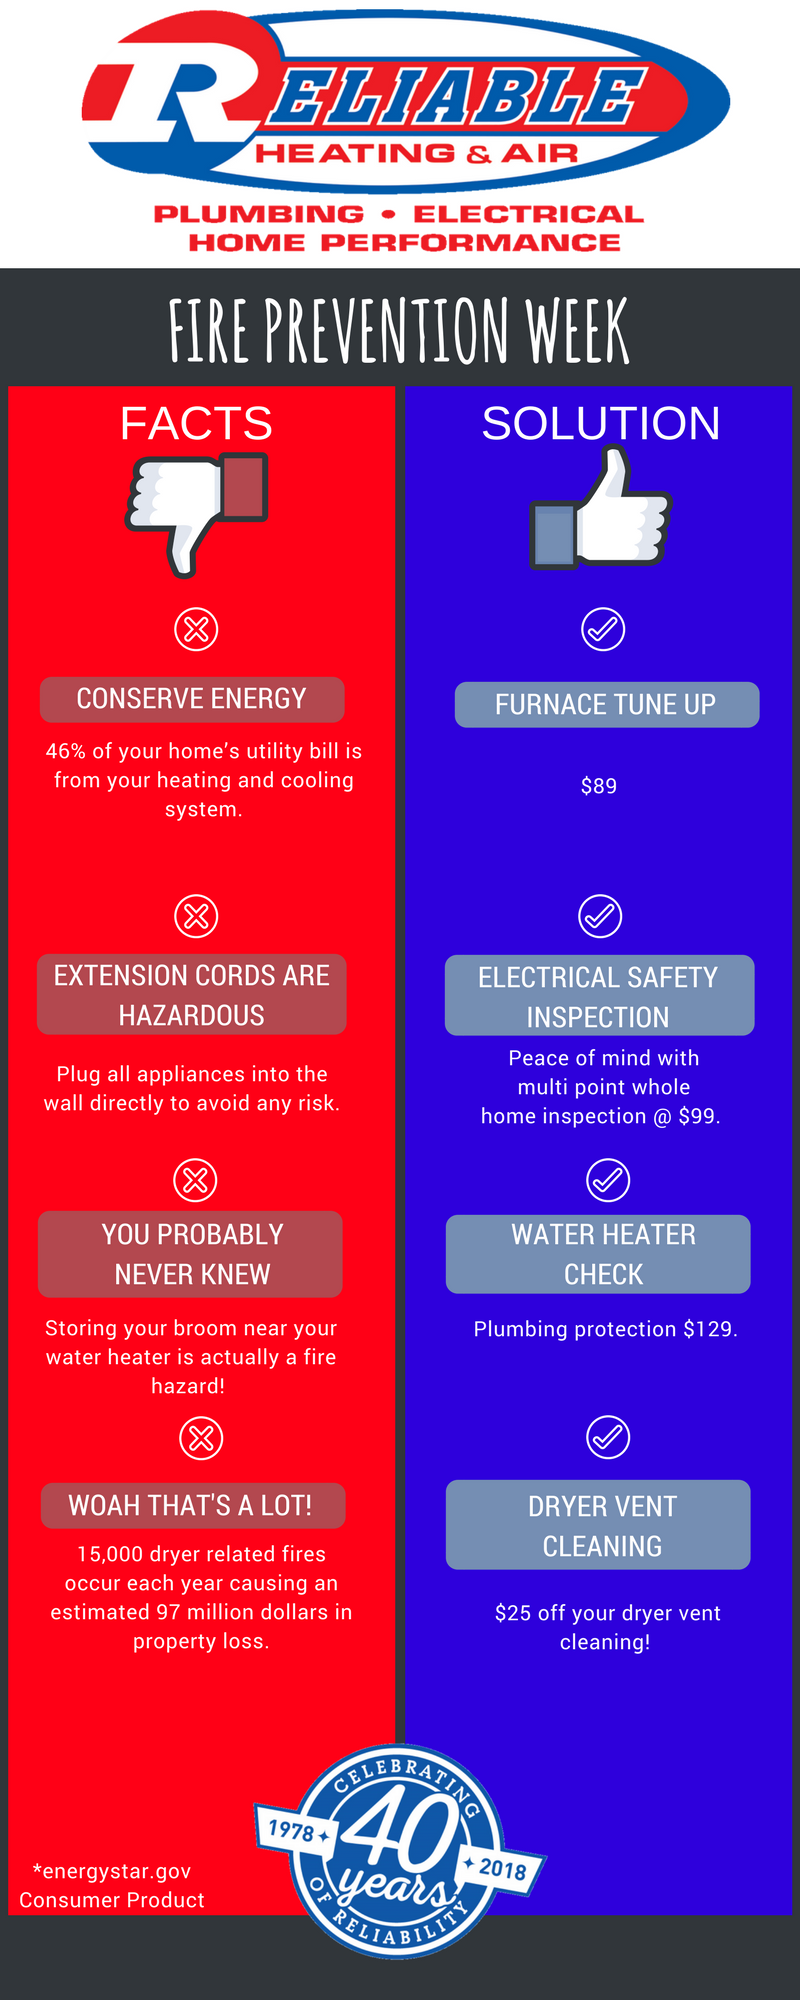 It's Fire Prevention Week: Here Are the Latest Safety Tips